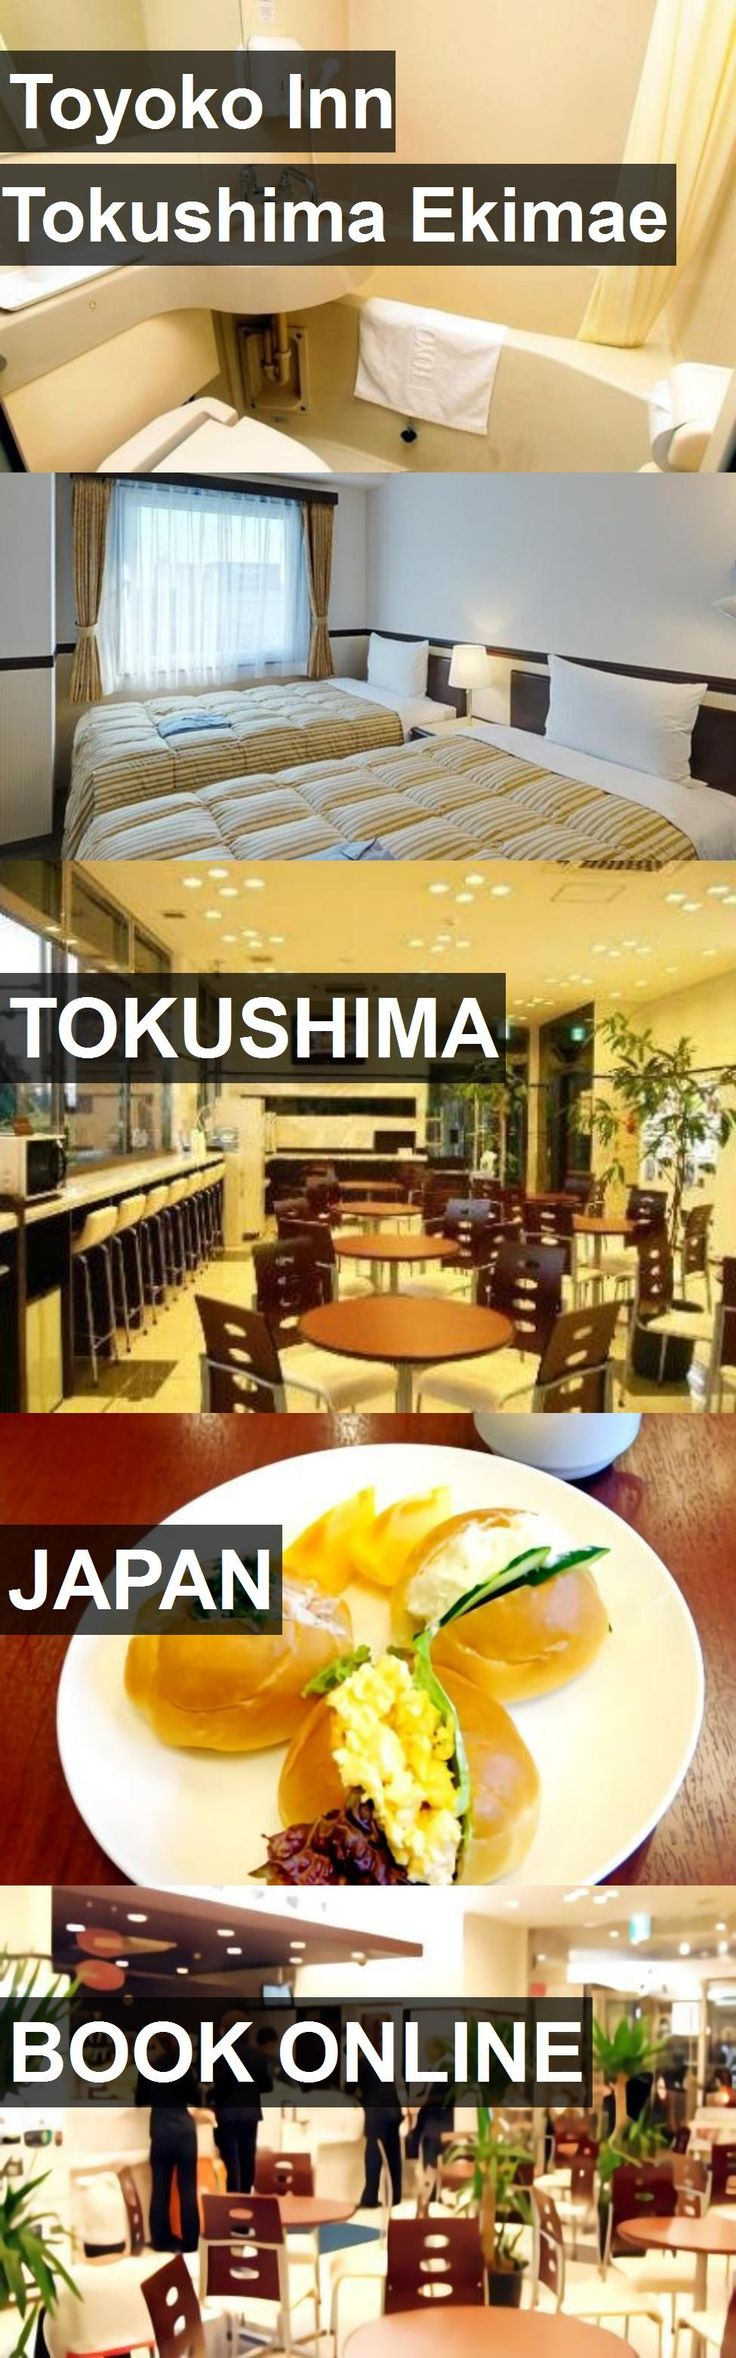 Hotel Toyoko Inn Tokushima Ekimae in Tokushima, Japan. For more information, photos, reviews and best prices please follow the link. #Japan #Tokushima #travel #vacation #hotel